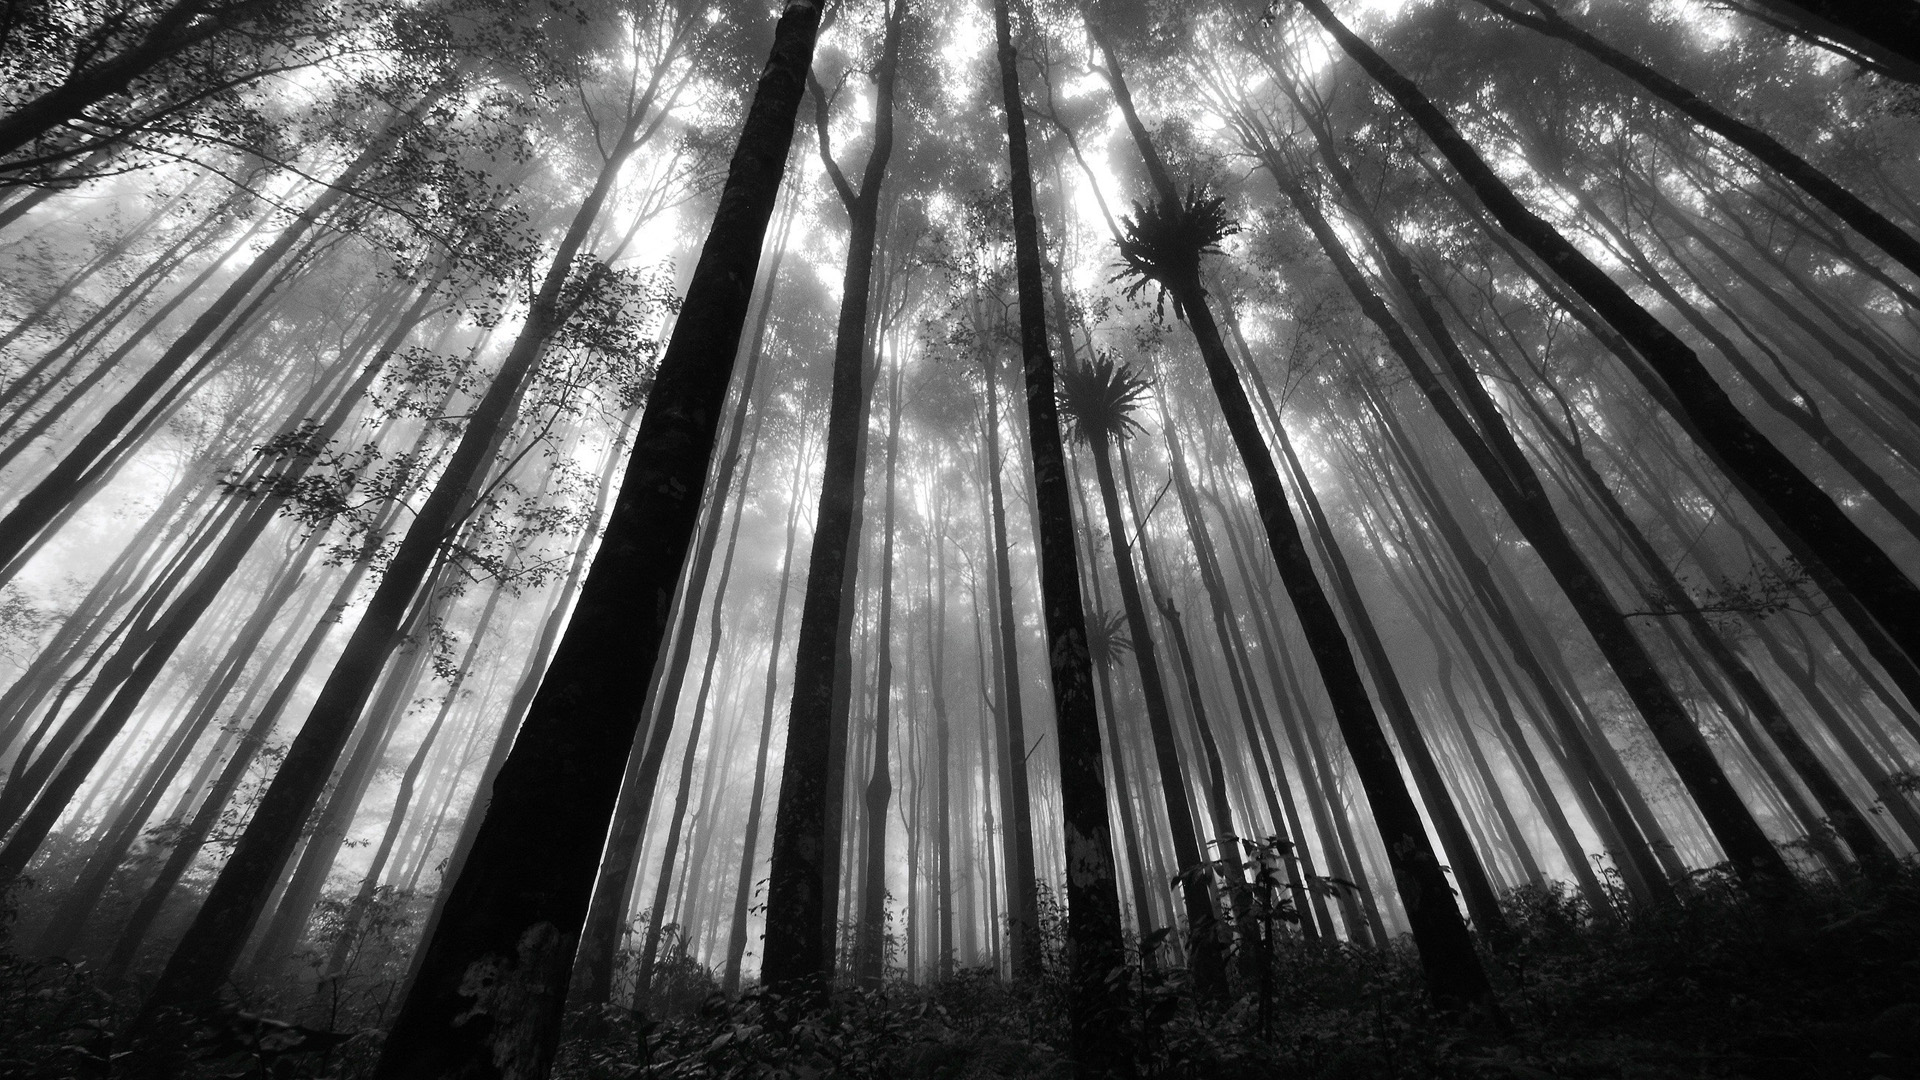 Background Wallpaper Hd Fall Fog Download Free Black And White Forest Wallpaper